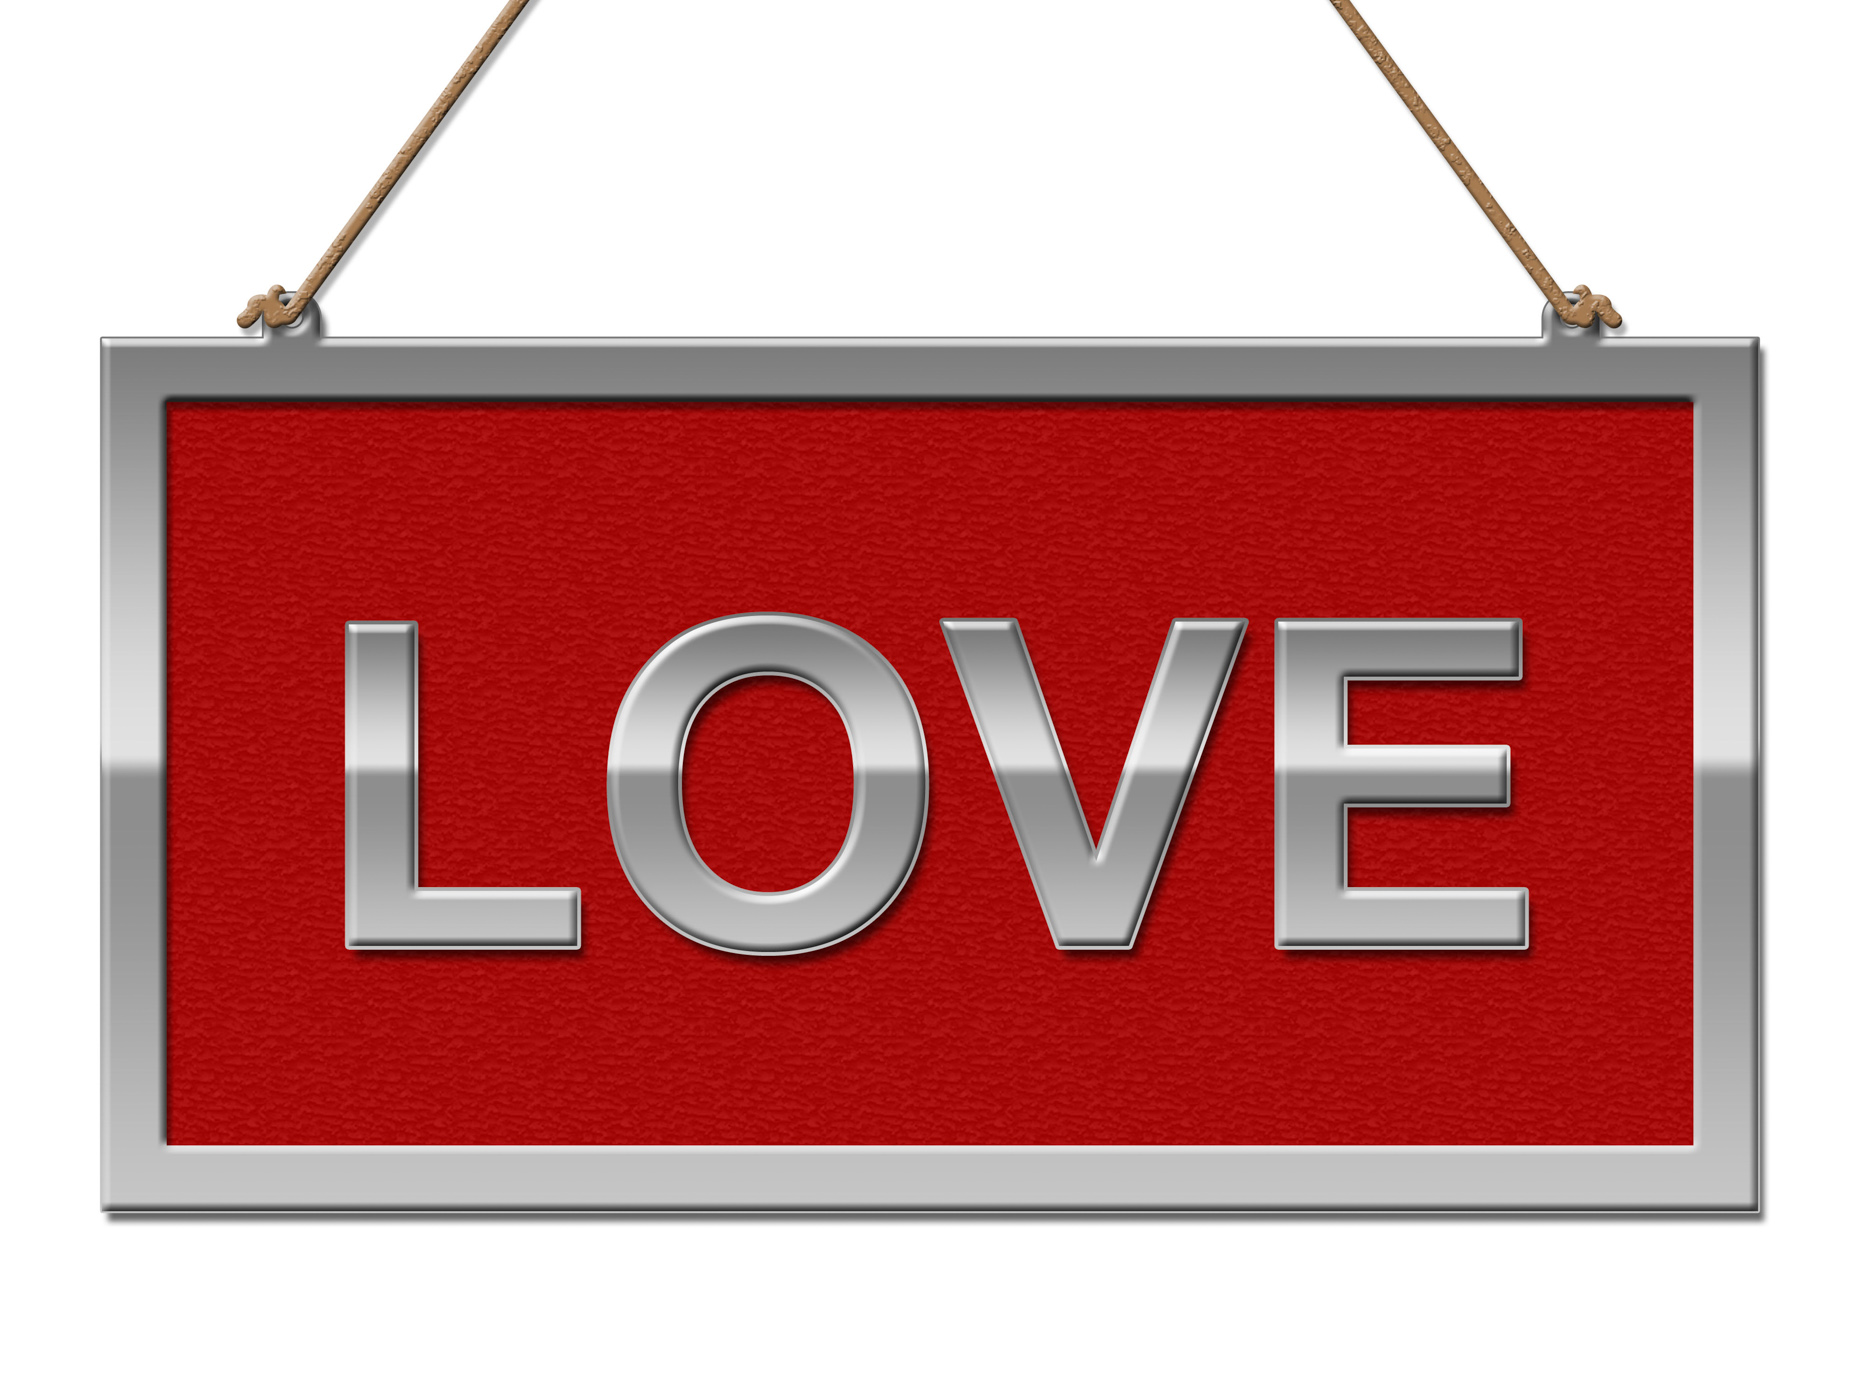 Love sign indicates advertisement adoration and passion photo